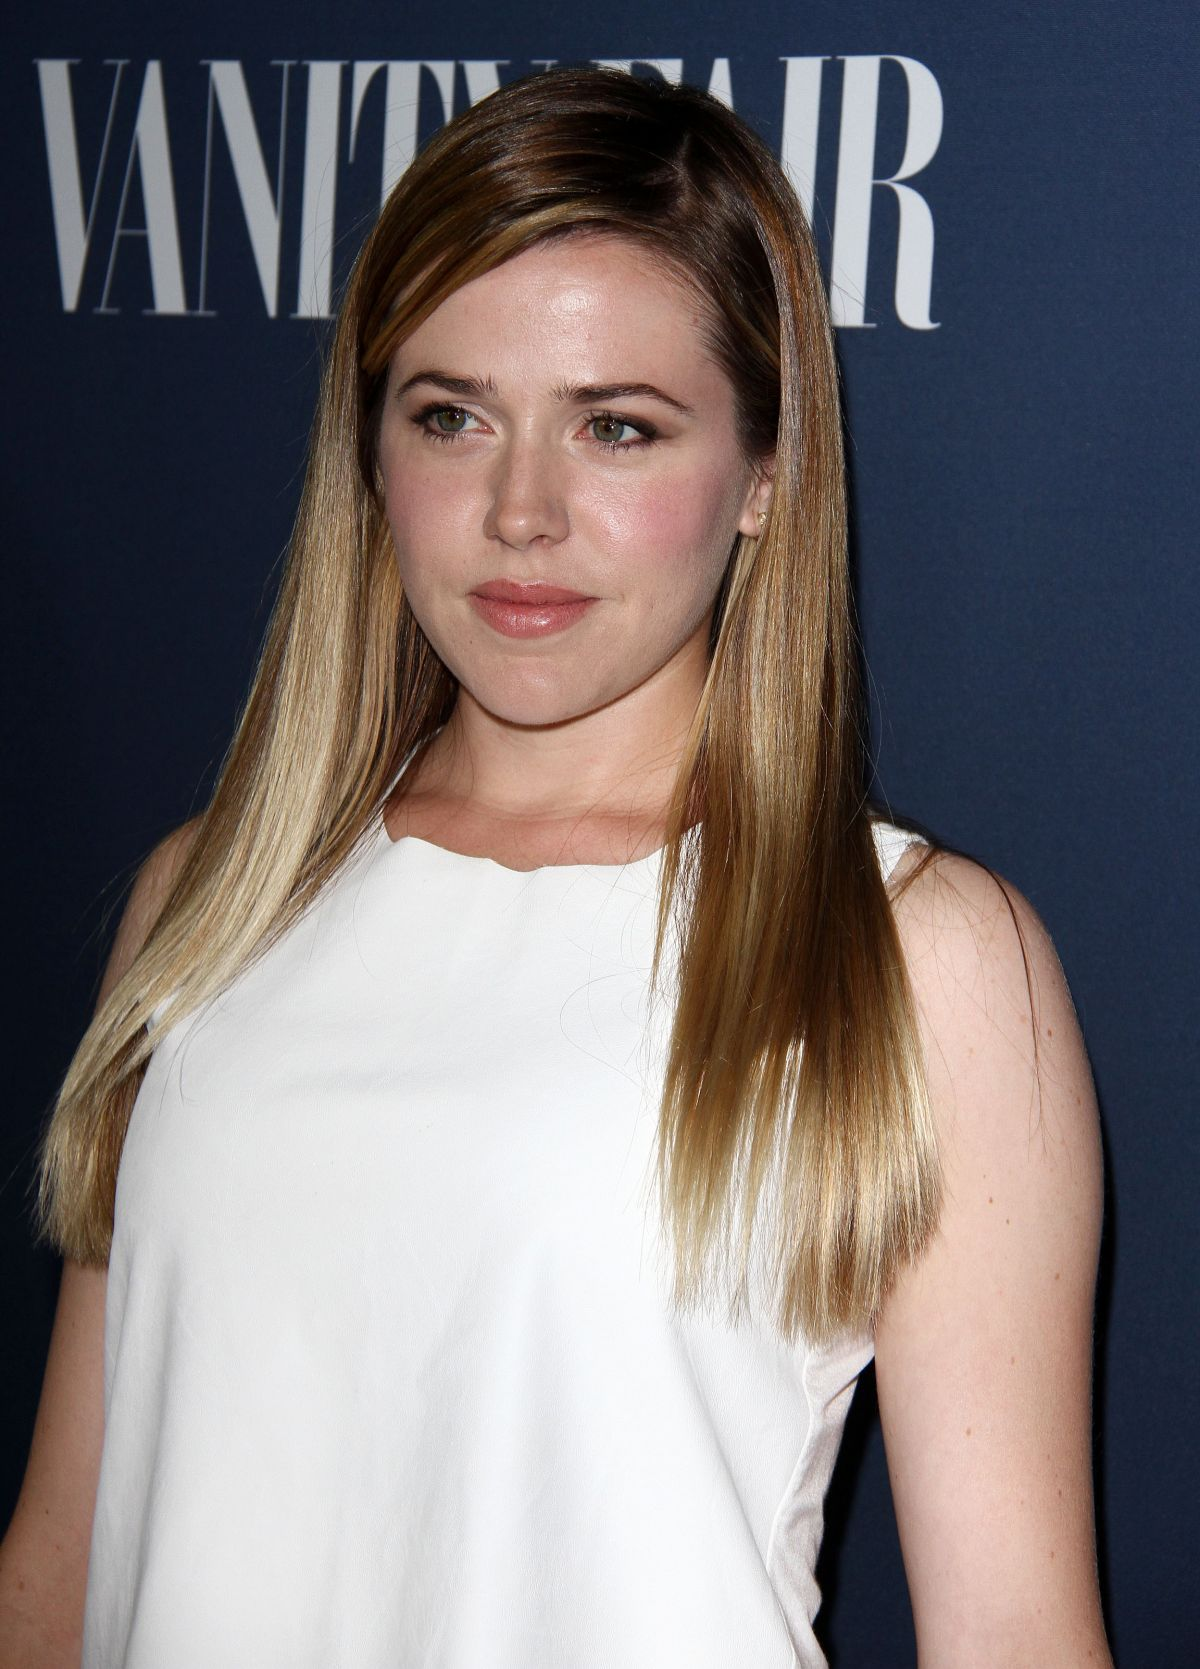 MAJANDRA DELFINO at NBC and Vanity Fair 2014/2015 TV Season Party in West Hollywood